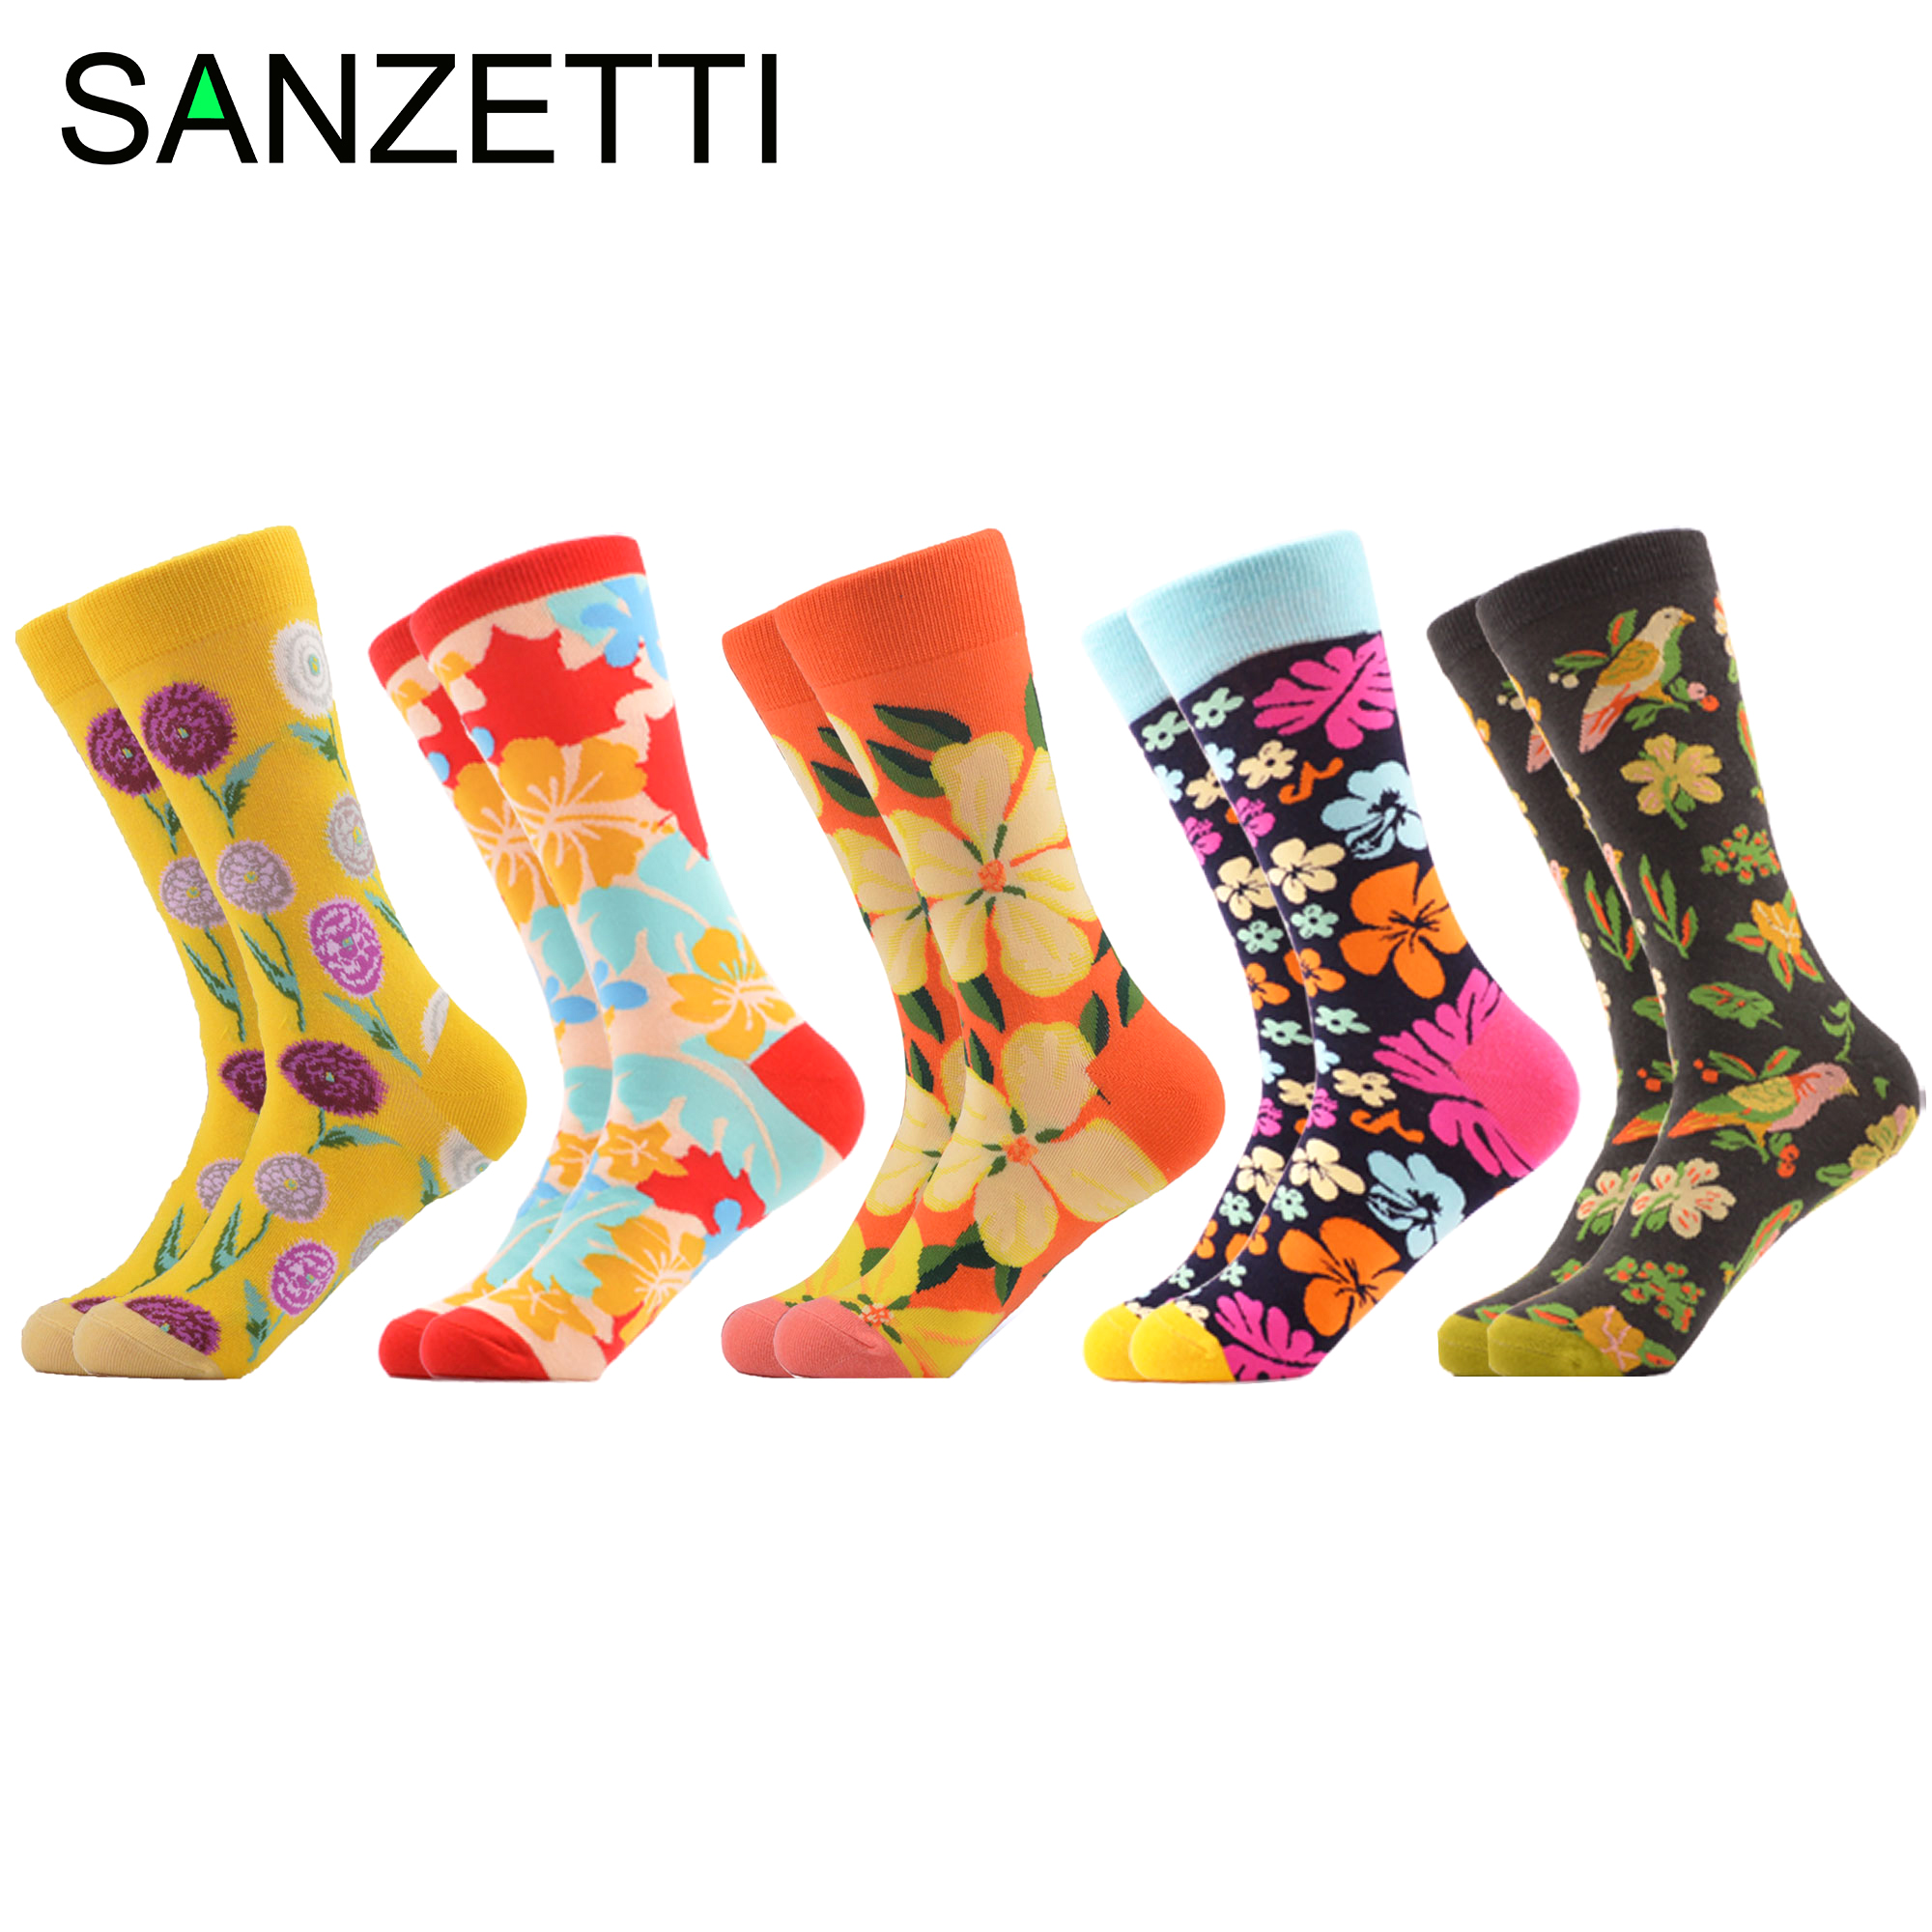 SANZETTI Men's Colorful Happy Socks Combed Cotton Socks Multiple Ideas Astronaut Guitar Elk Pattern Dress Breathable Gift Socks